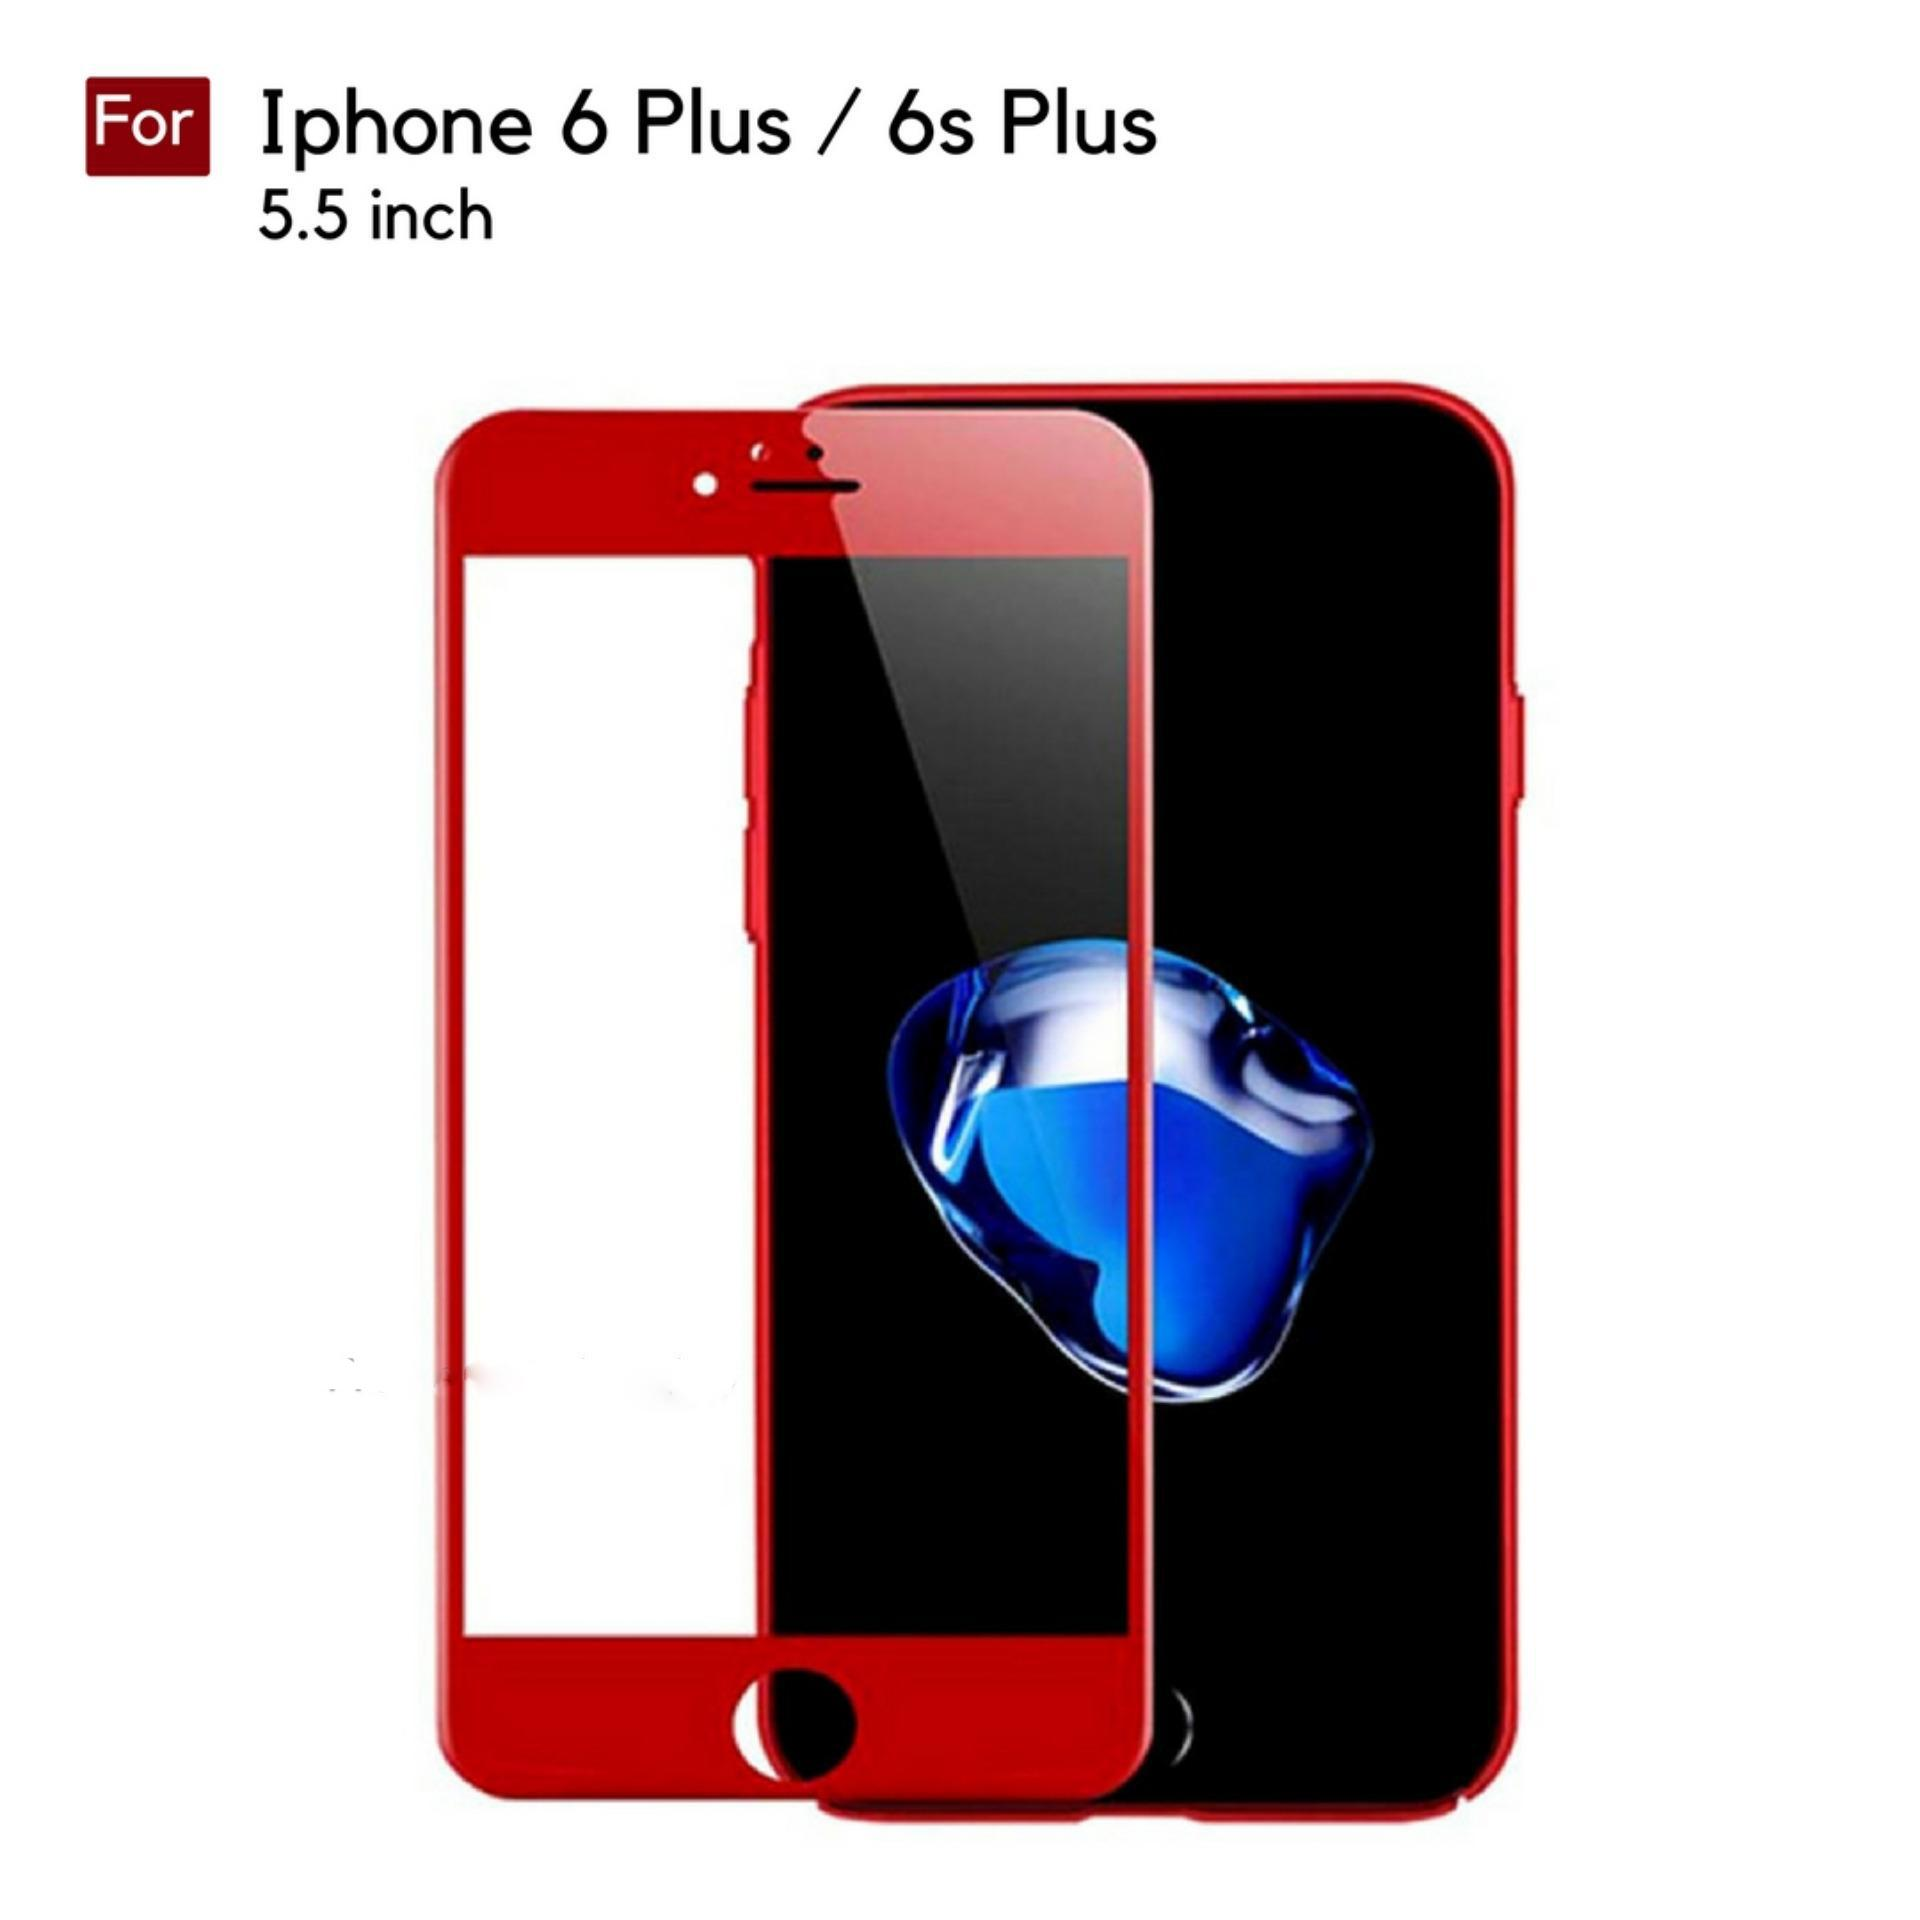 RenzanaAcc Tempered Glass Warna Full Corning Screen Protector For Iphone 6 Plus / 6s Plus (5.5 inch) - Merah